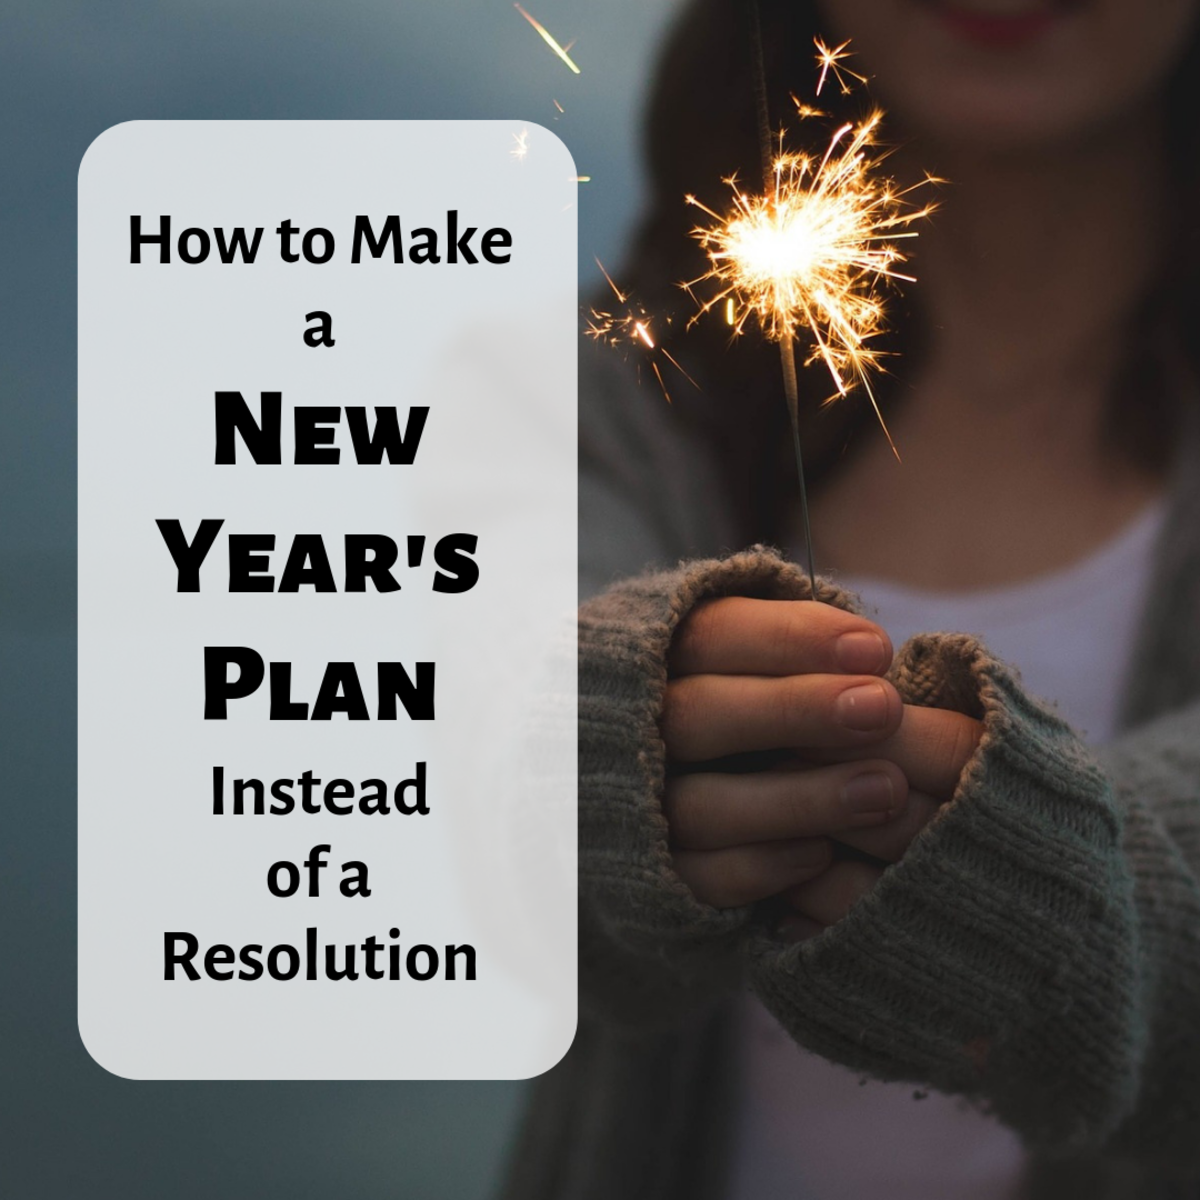 Try making a plan for New Year's this year, not just a resolution that you'll struggle to follow.